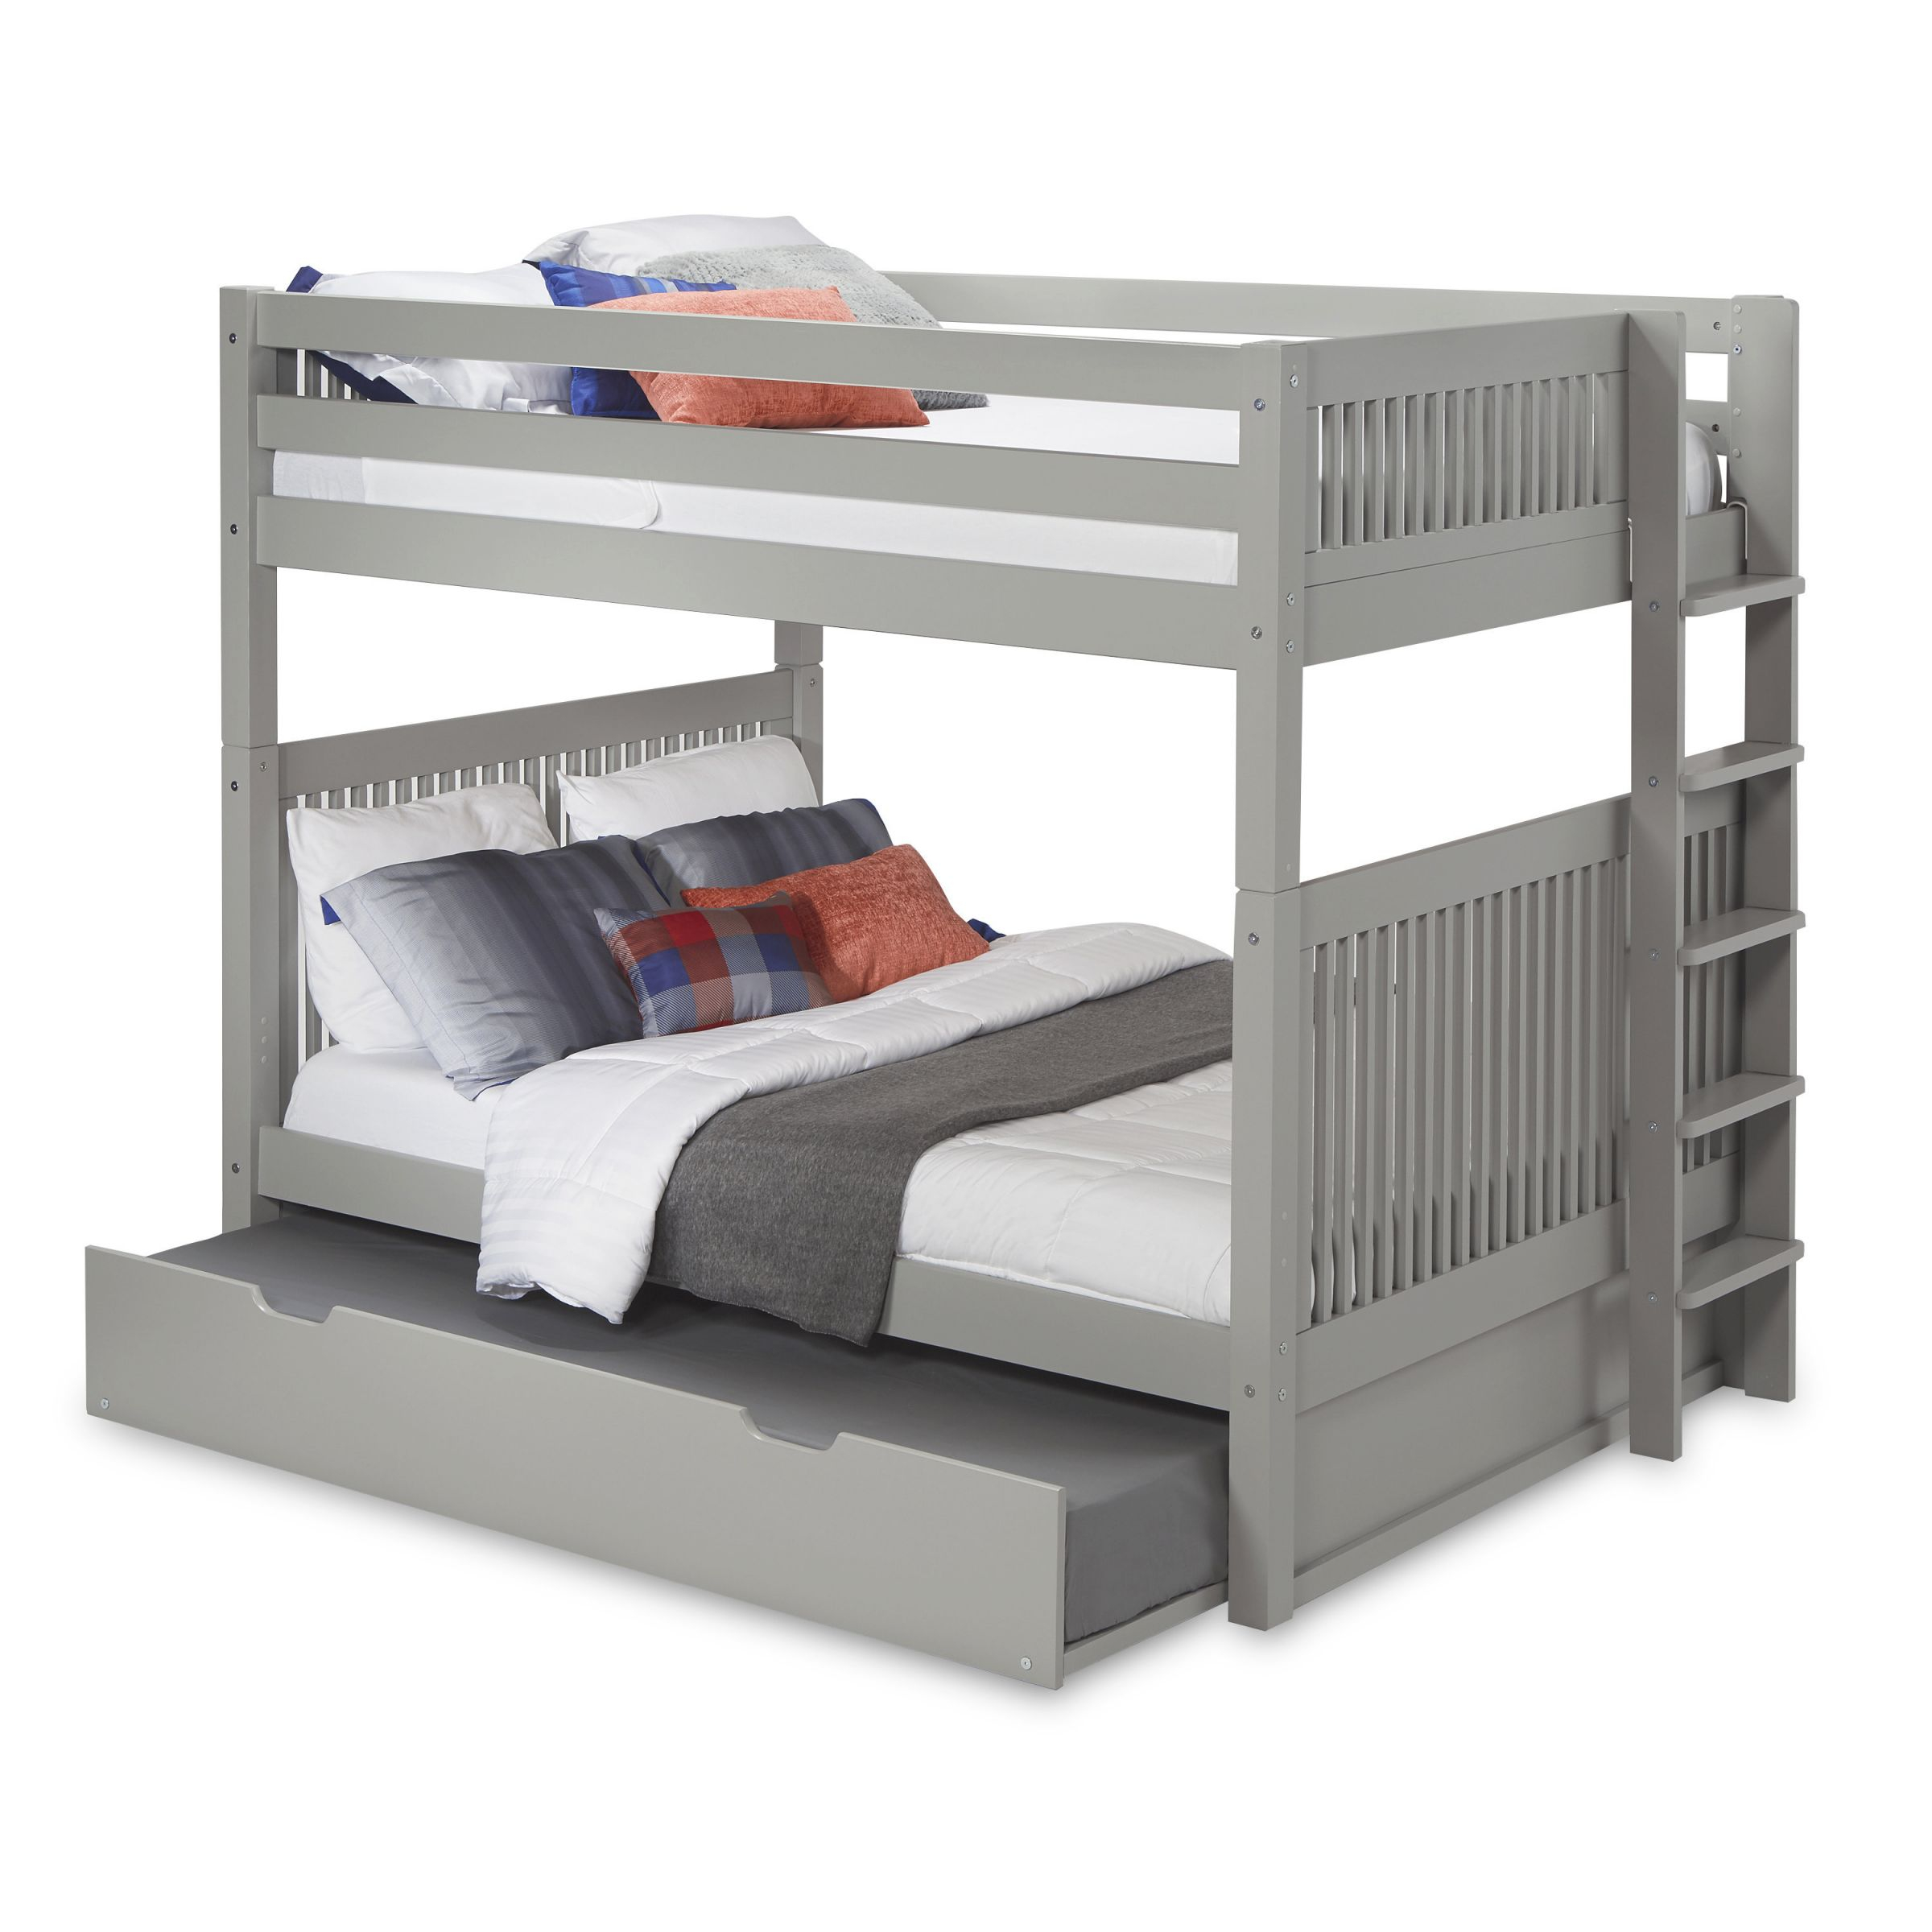 Rabon Full Over Full Bunk Bed With Trundle in Awesome Full Size Bed With Trundle Bedroom Set